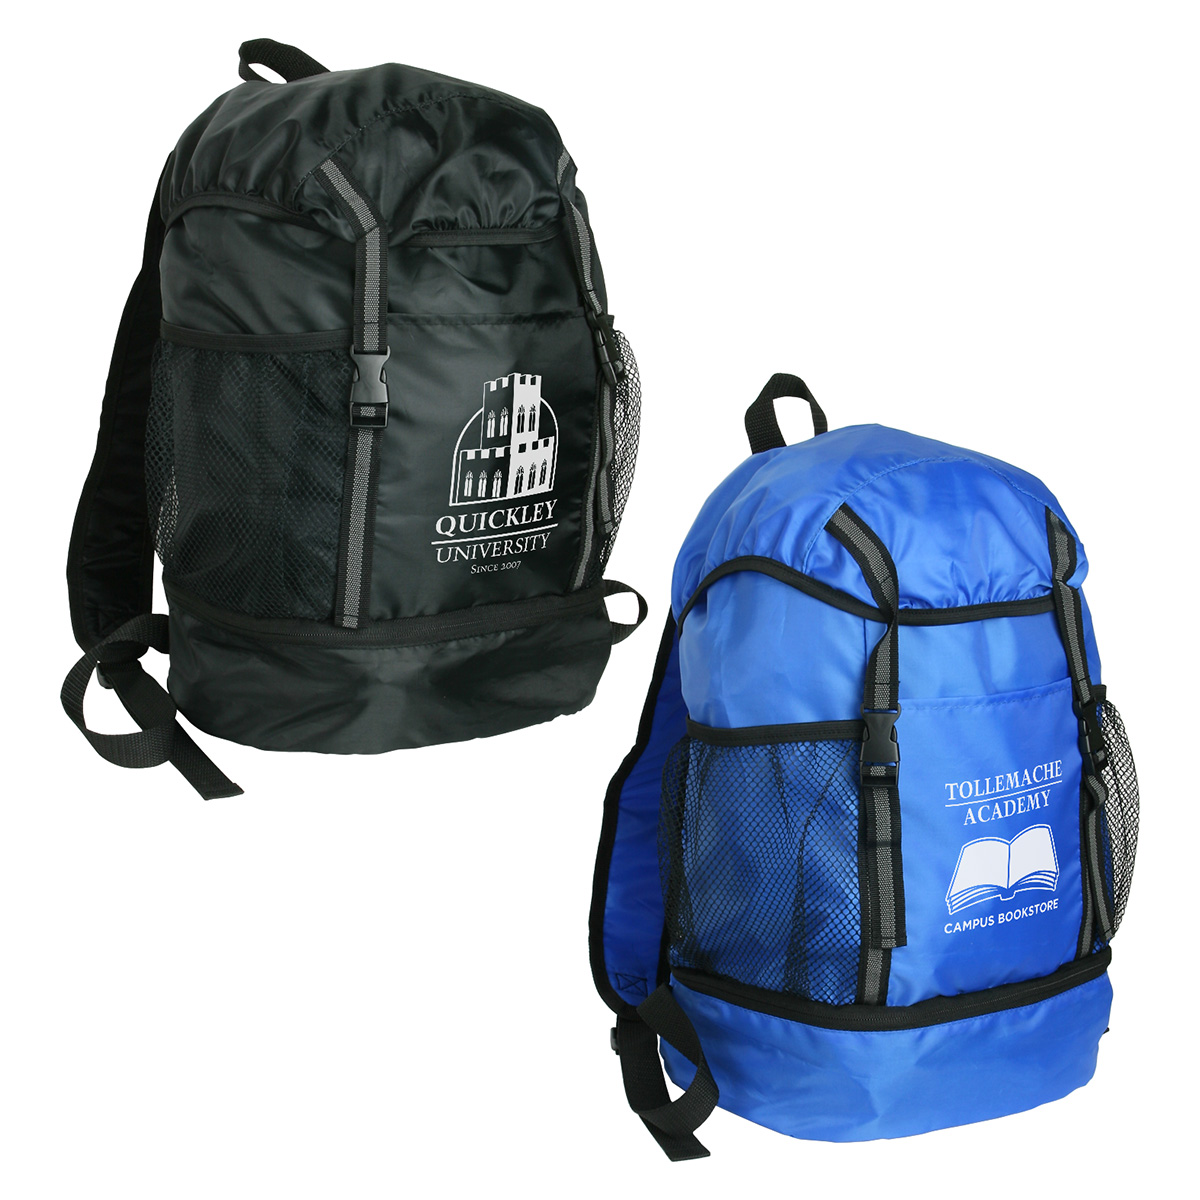 Trail Loop Drawstring Backpack, WBA-TL11 - 1 Colour Imprint